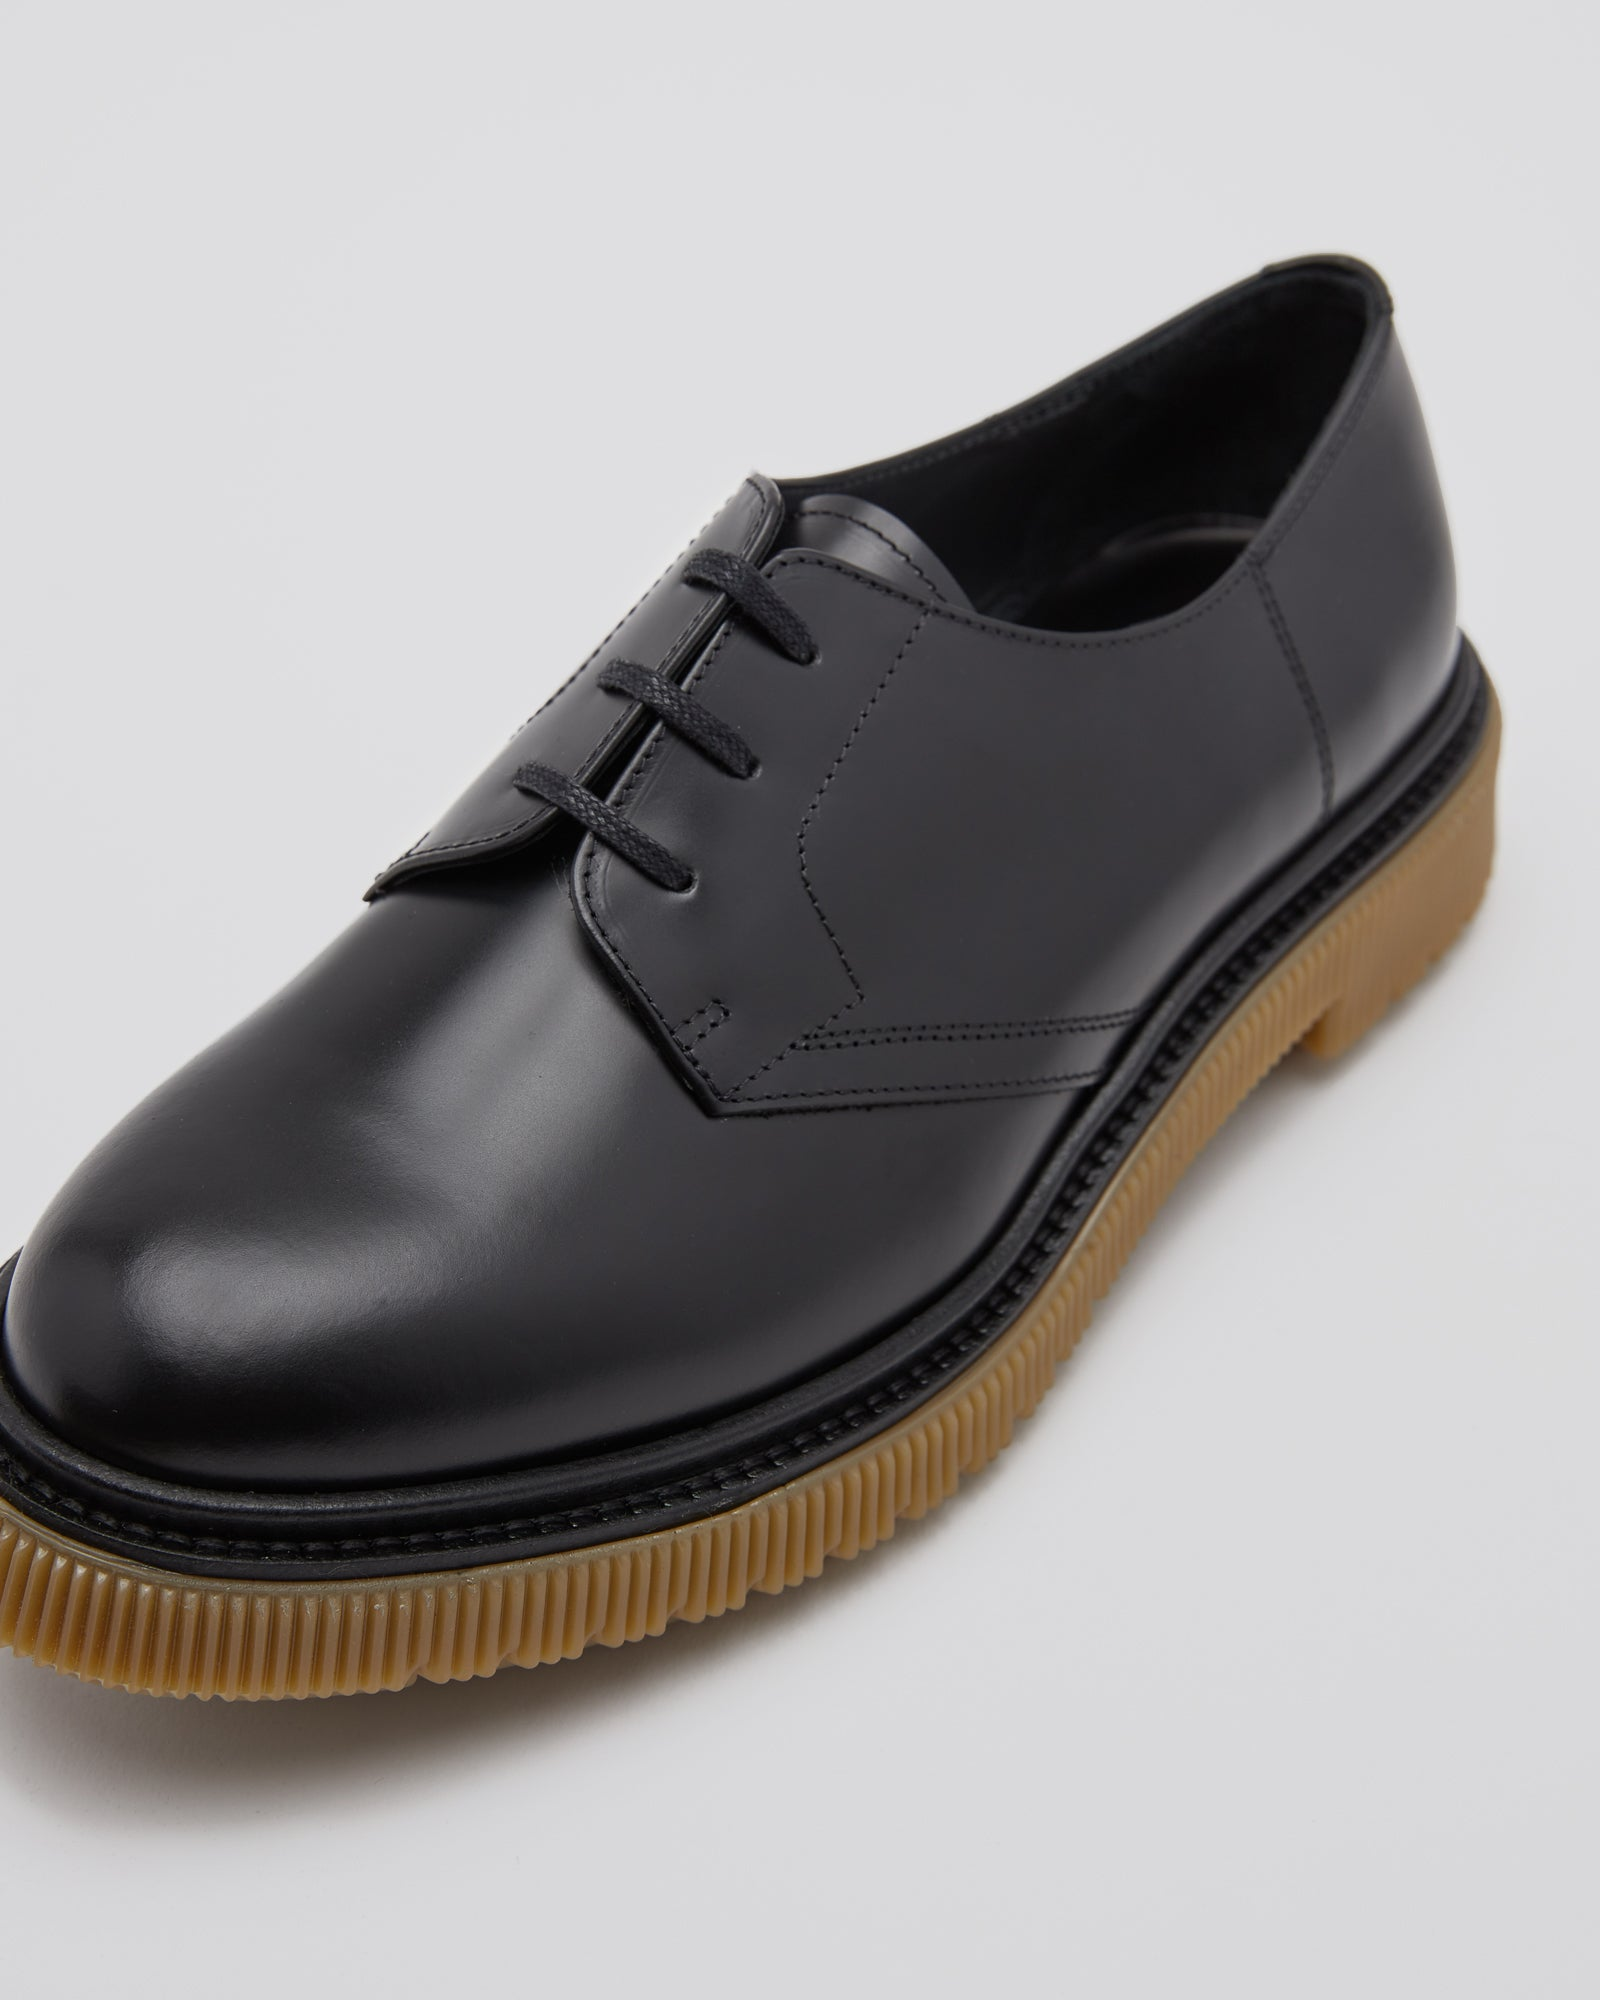 Type 132 Derby Shoes in Black